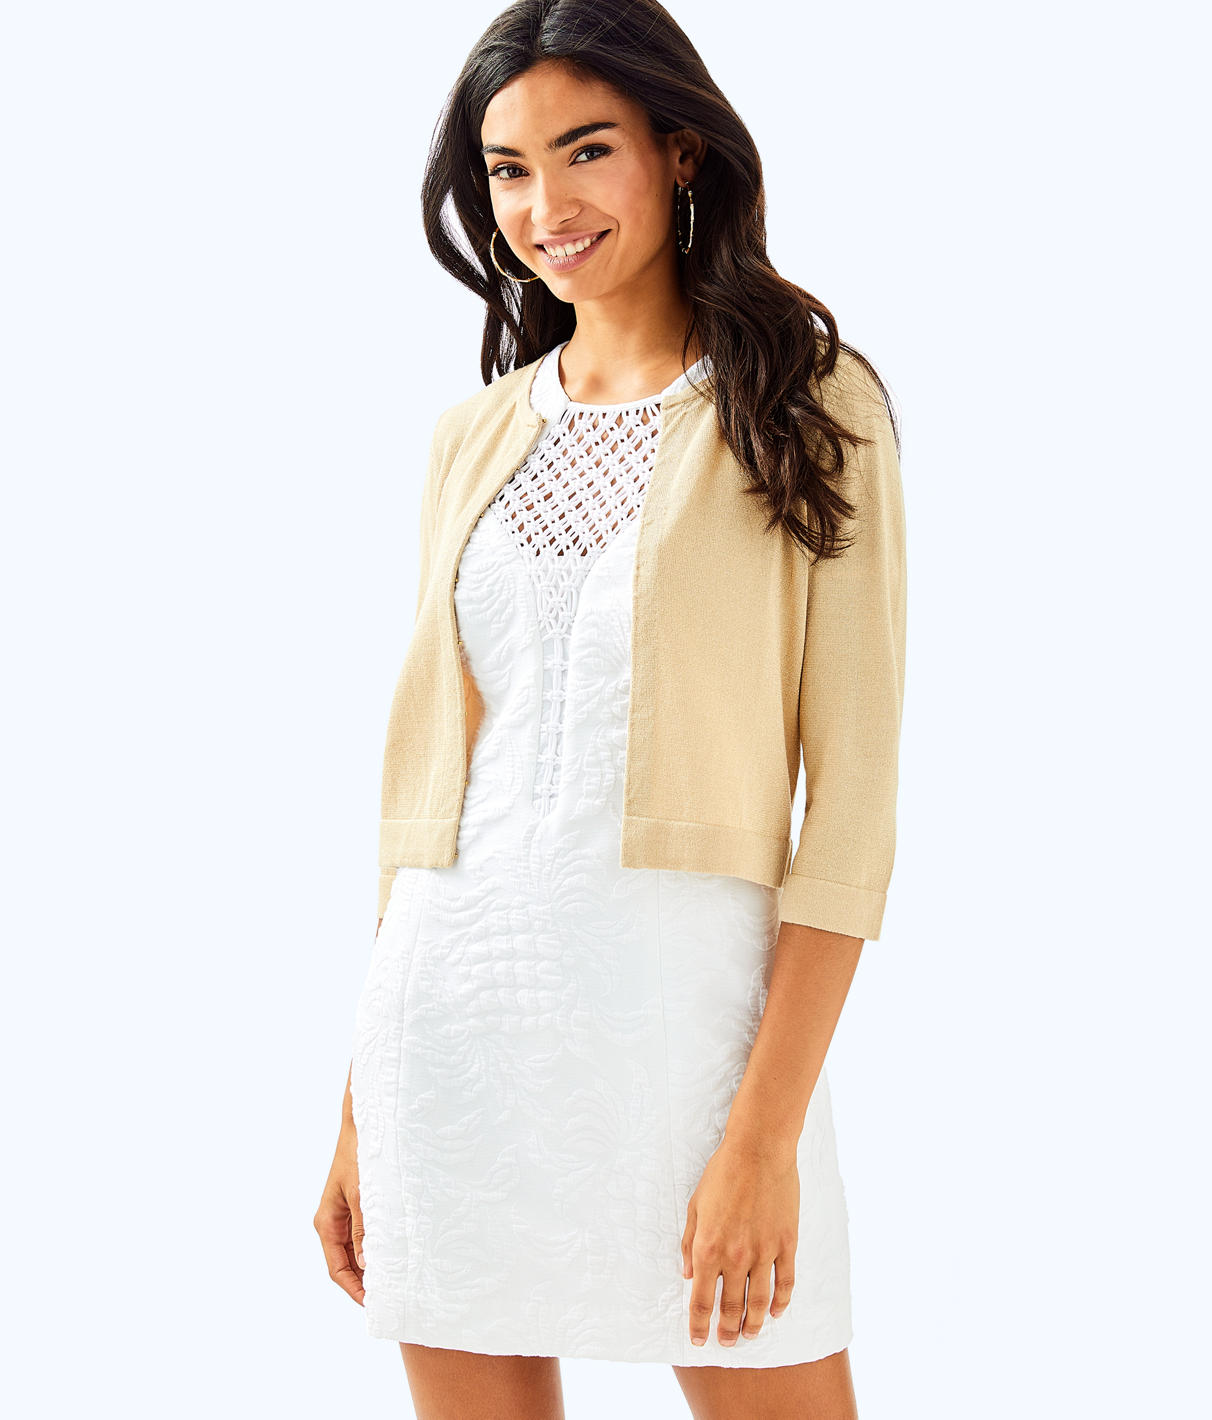 Lilly Pulitzer Lilly Pulitzer Womens Anne Cardigan